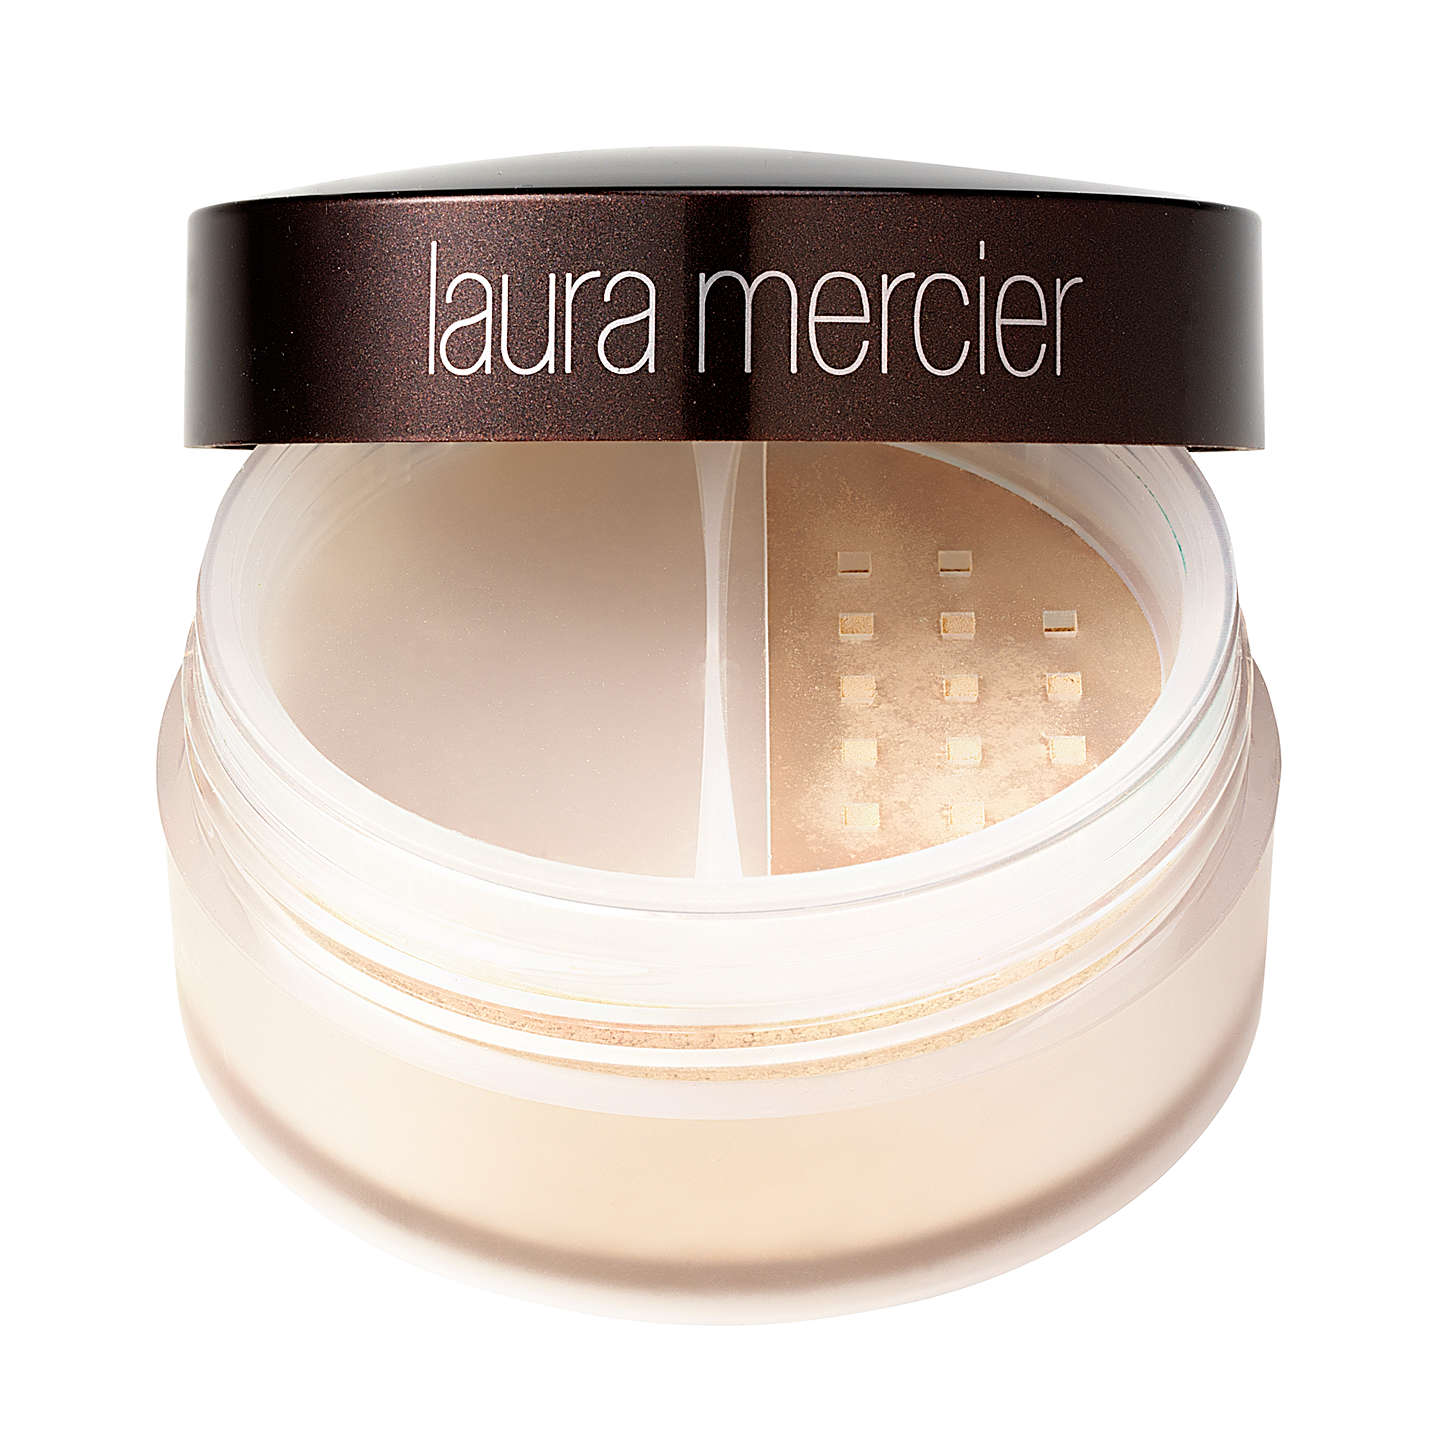 BuyLaura Mercier Mineral Powder, Real Sand Online at johnlewis.com